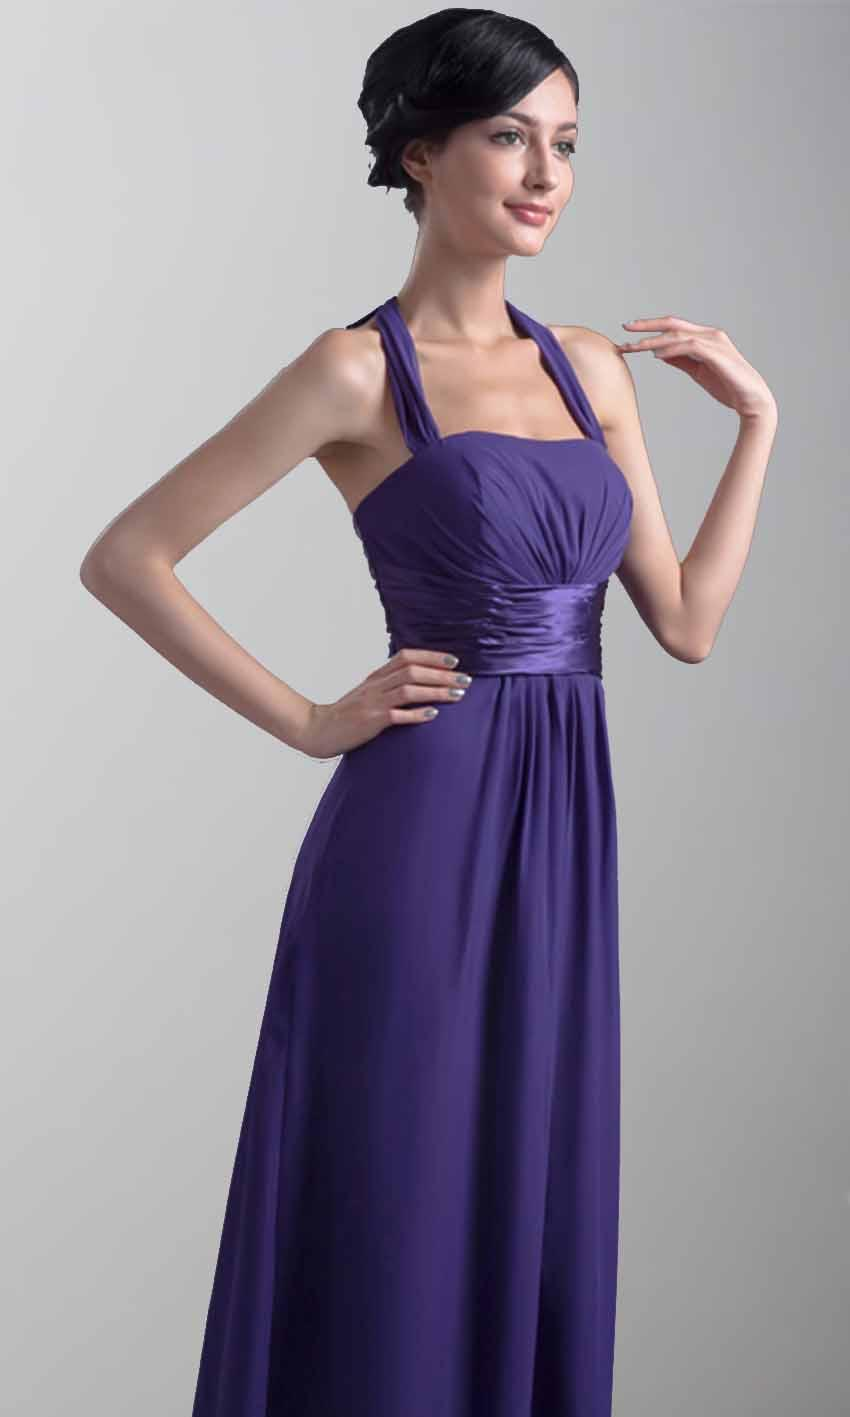 Elegant purple halter long bridesmaid dresses ksp382 ksp382 elegant purple halter long bridesmaid dresses ksp382 ksp382 8400 cheap prom dresses uk bridesmaid dresses 2014 prom evening dresses ombrellifo Image collections